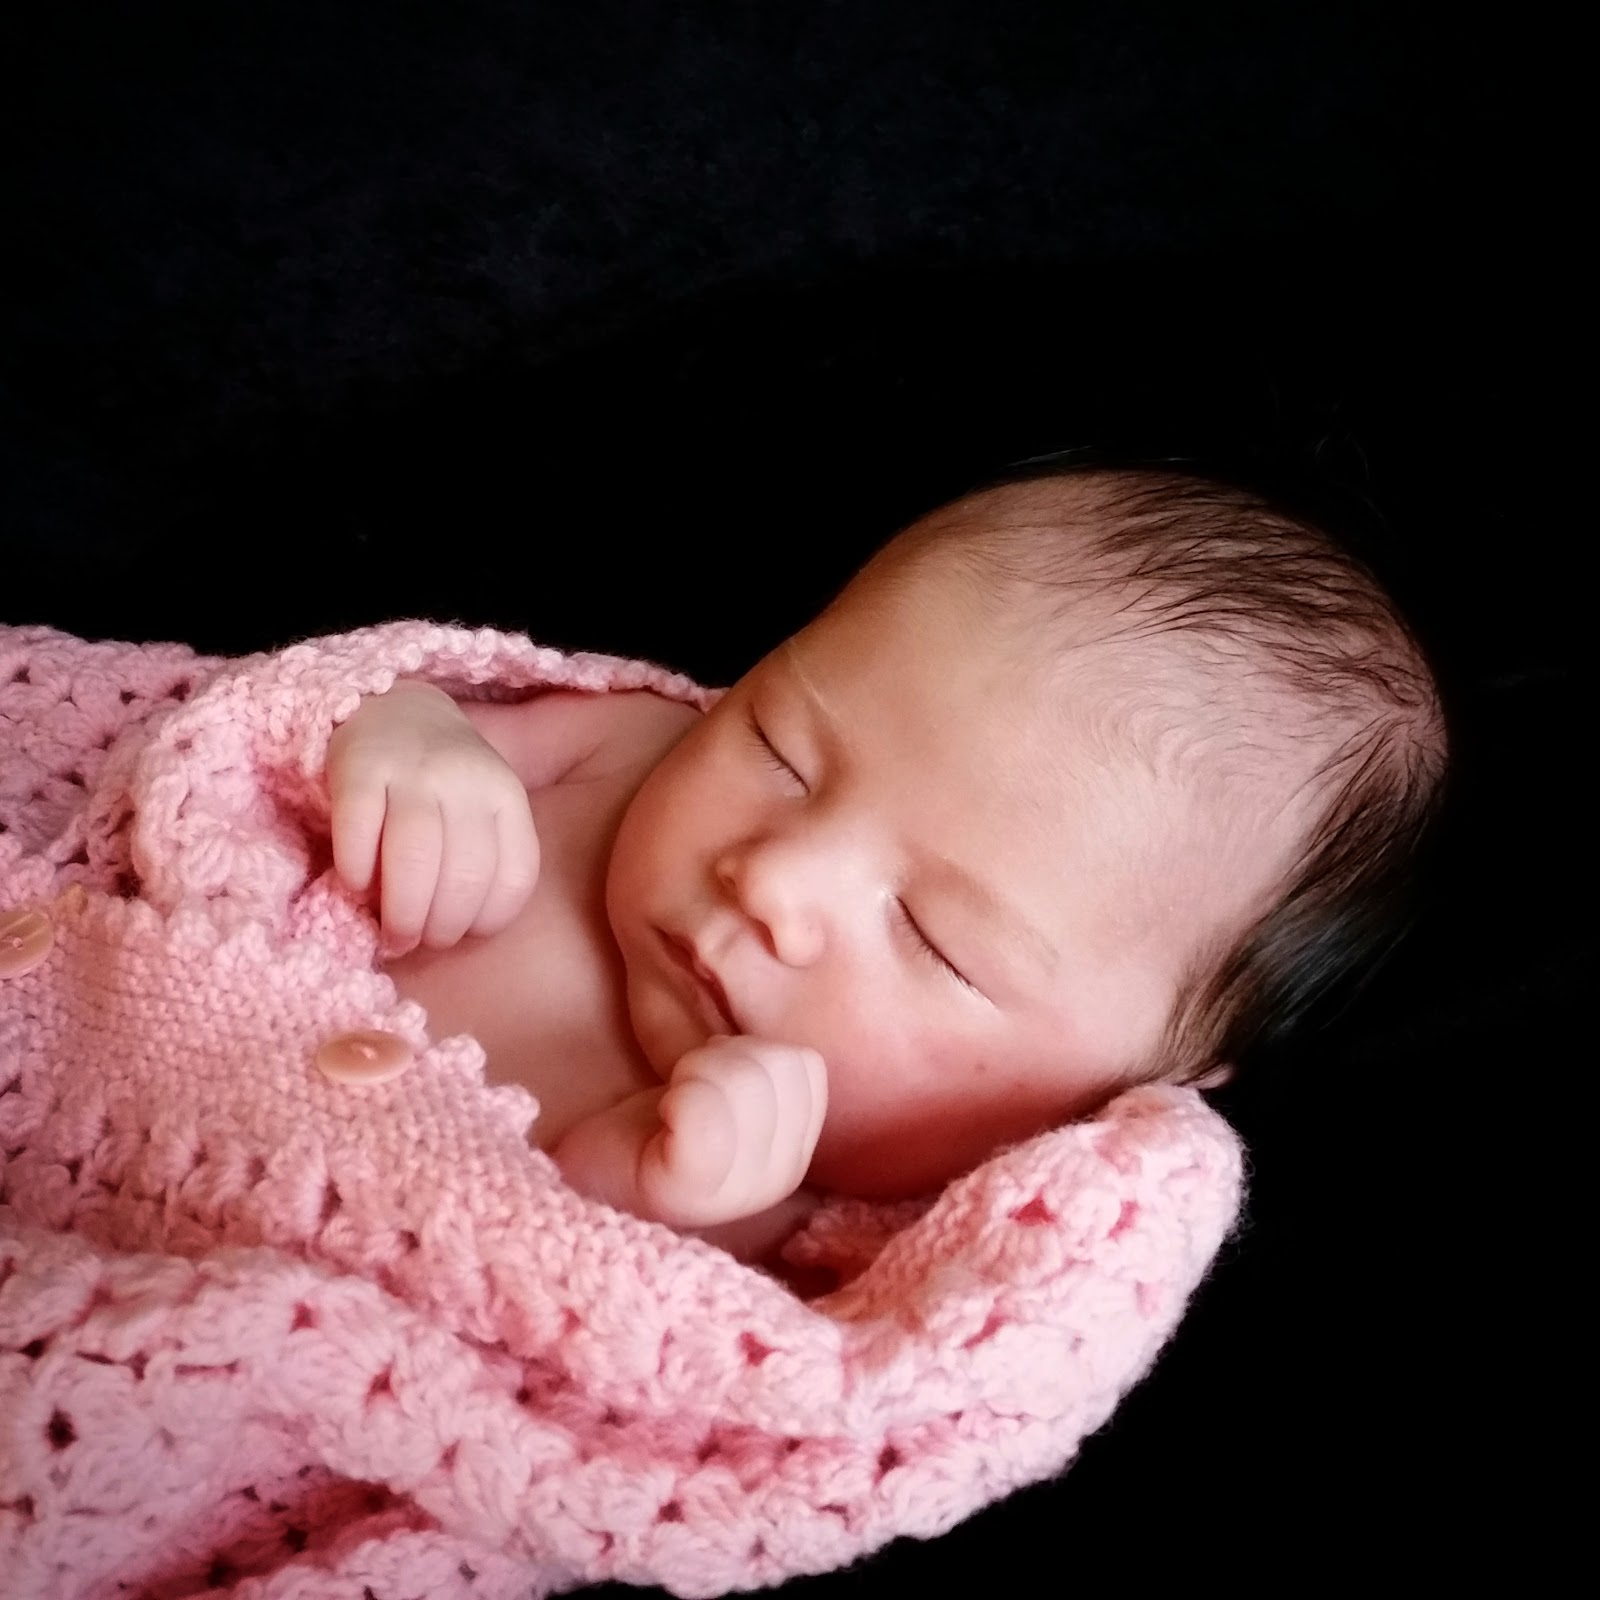 DIY newborn photography with pink crochet blanket